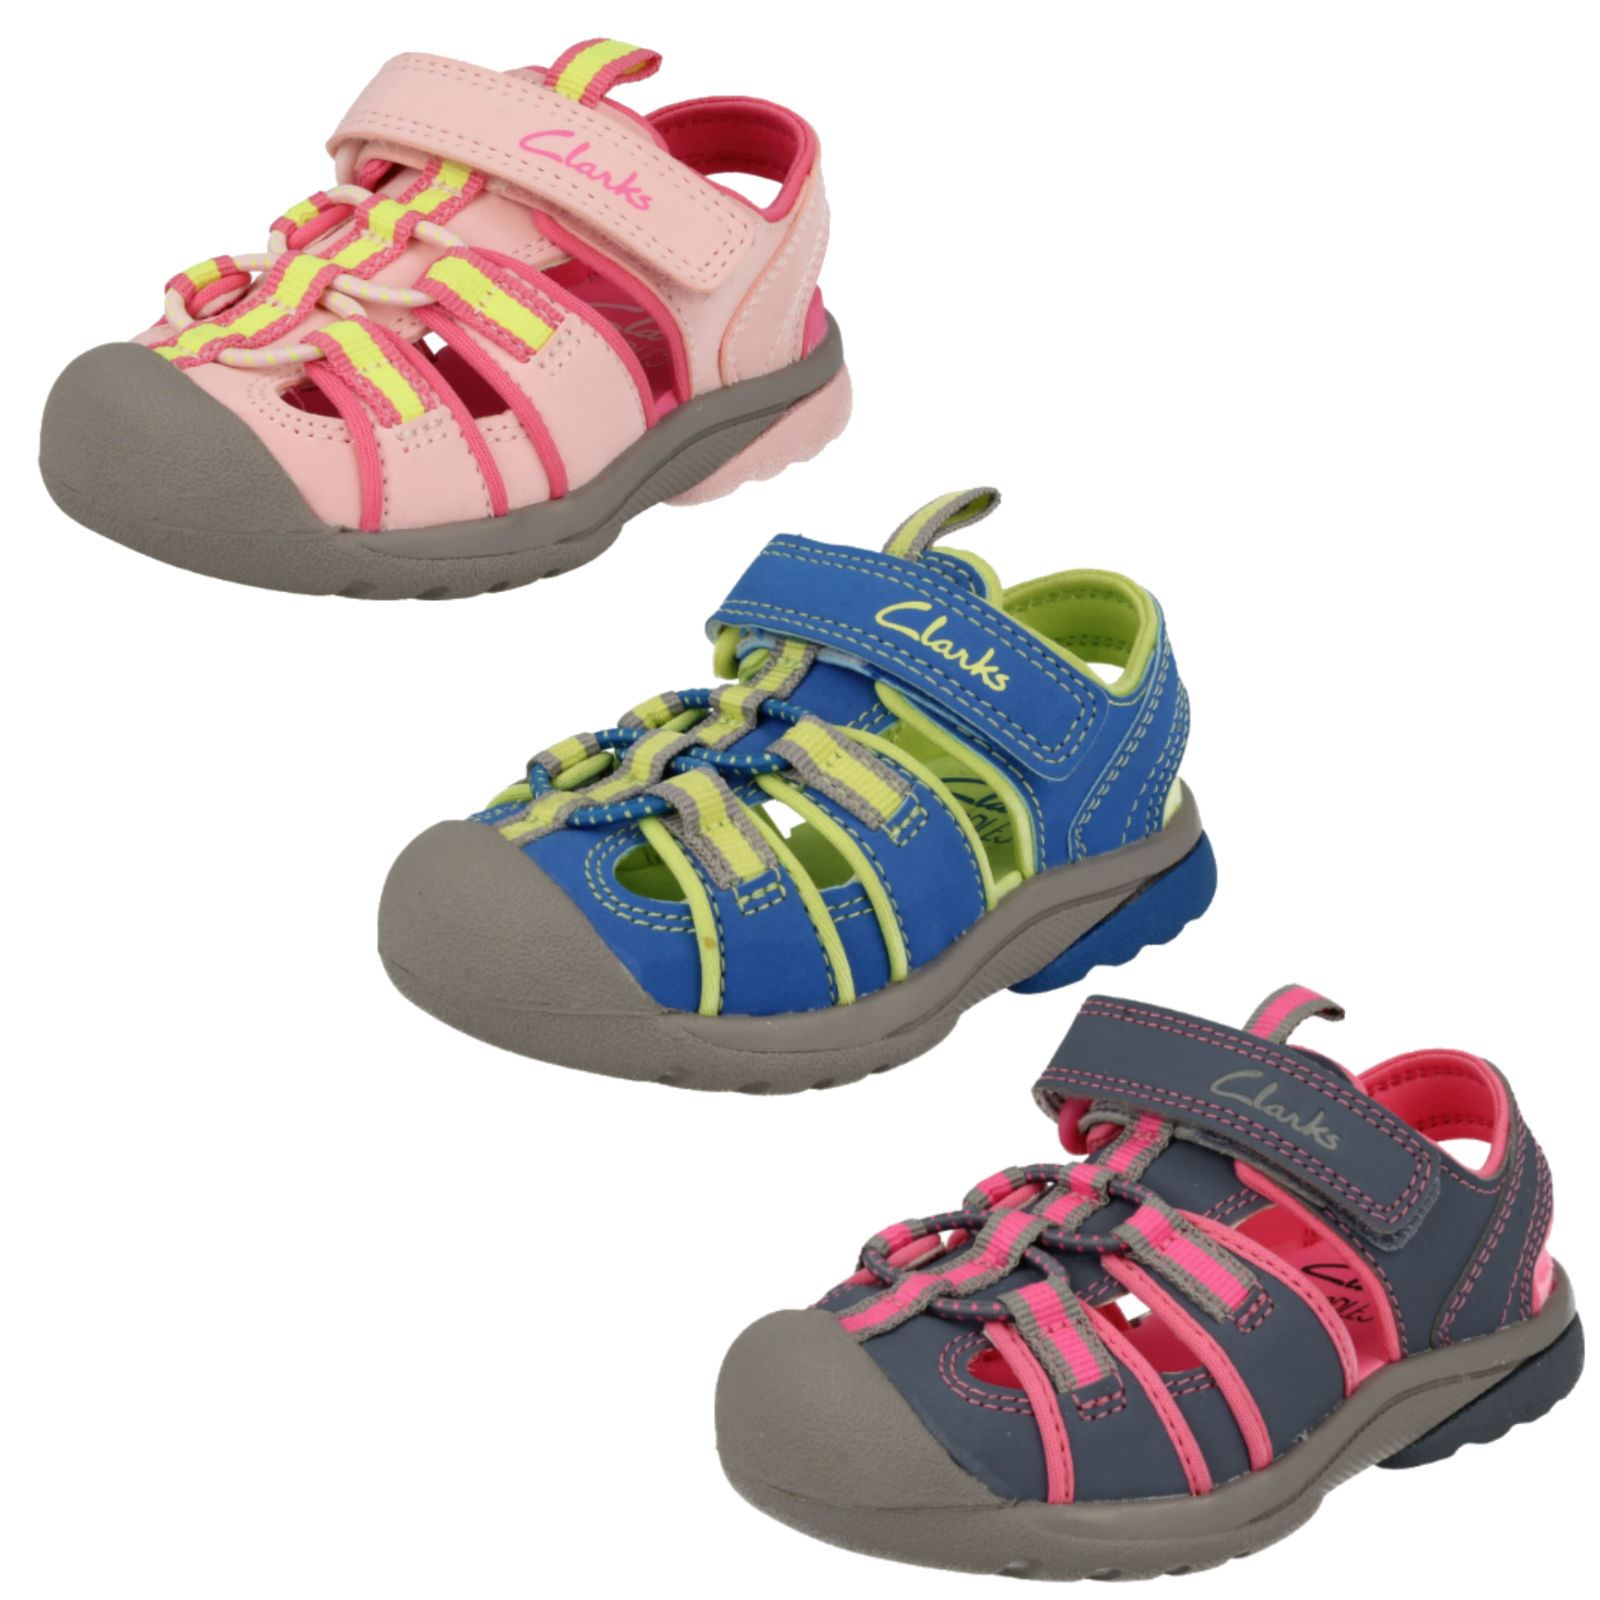 76e21fad7ed2 Clarks Childrens Unisex Closed Toe Sandals Beach Tide